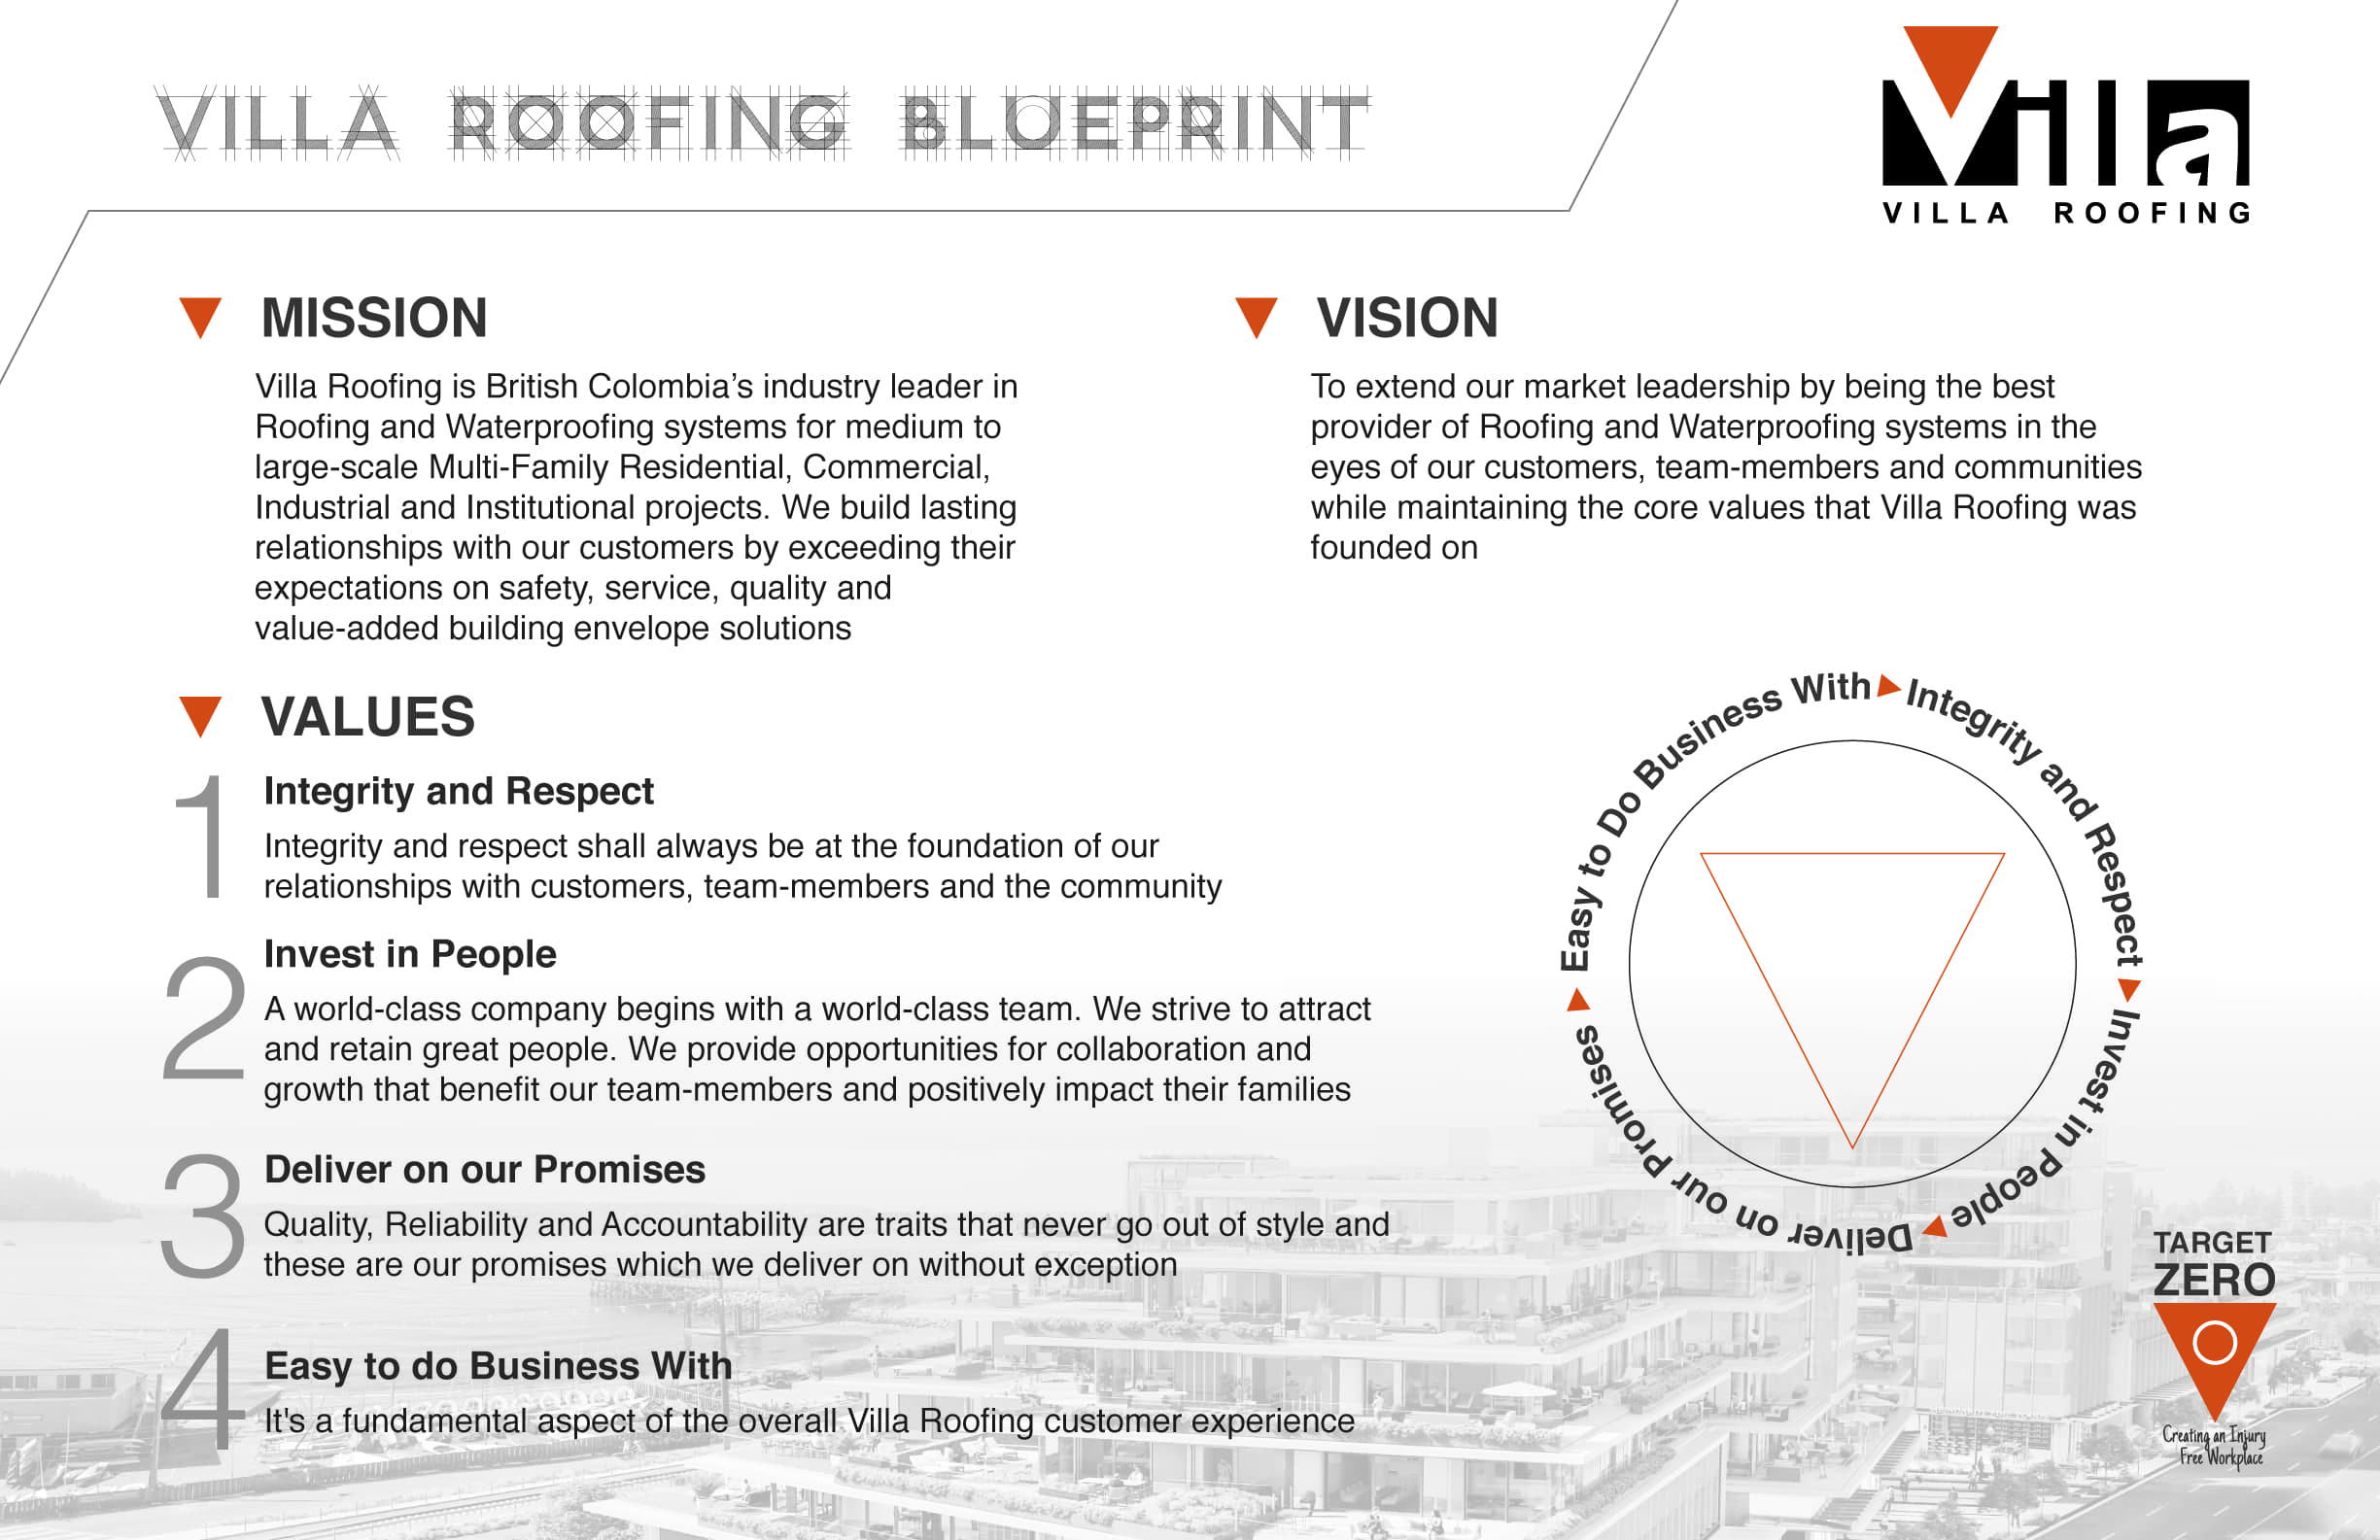 About us villa roofing bcs industry leader in roofing and lasting relationships with our customers by exceeding their expectations on safety service quality and value added building envelope solutions malvernweather Image collections